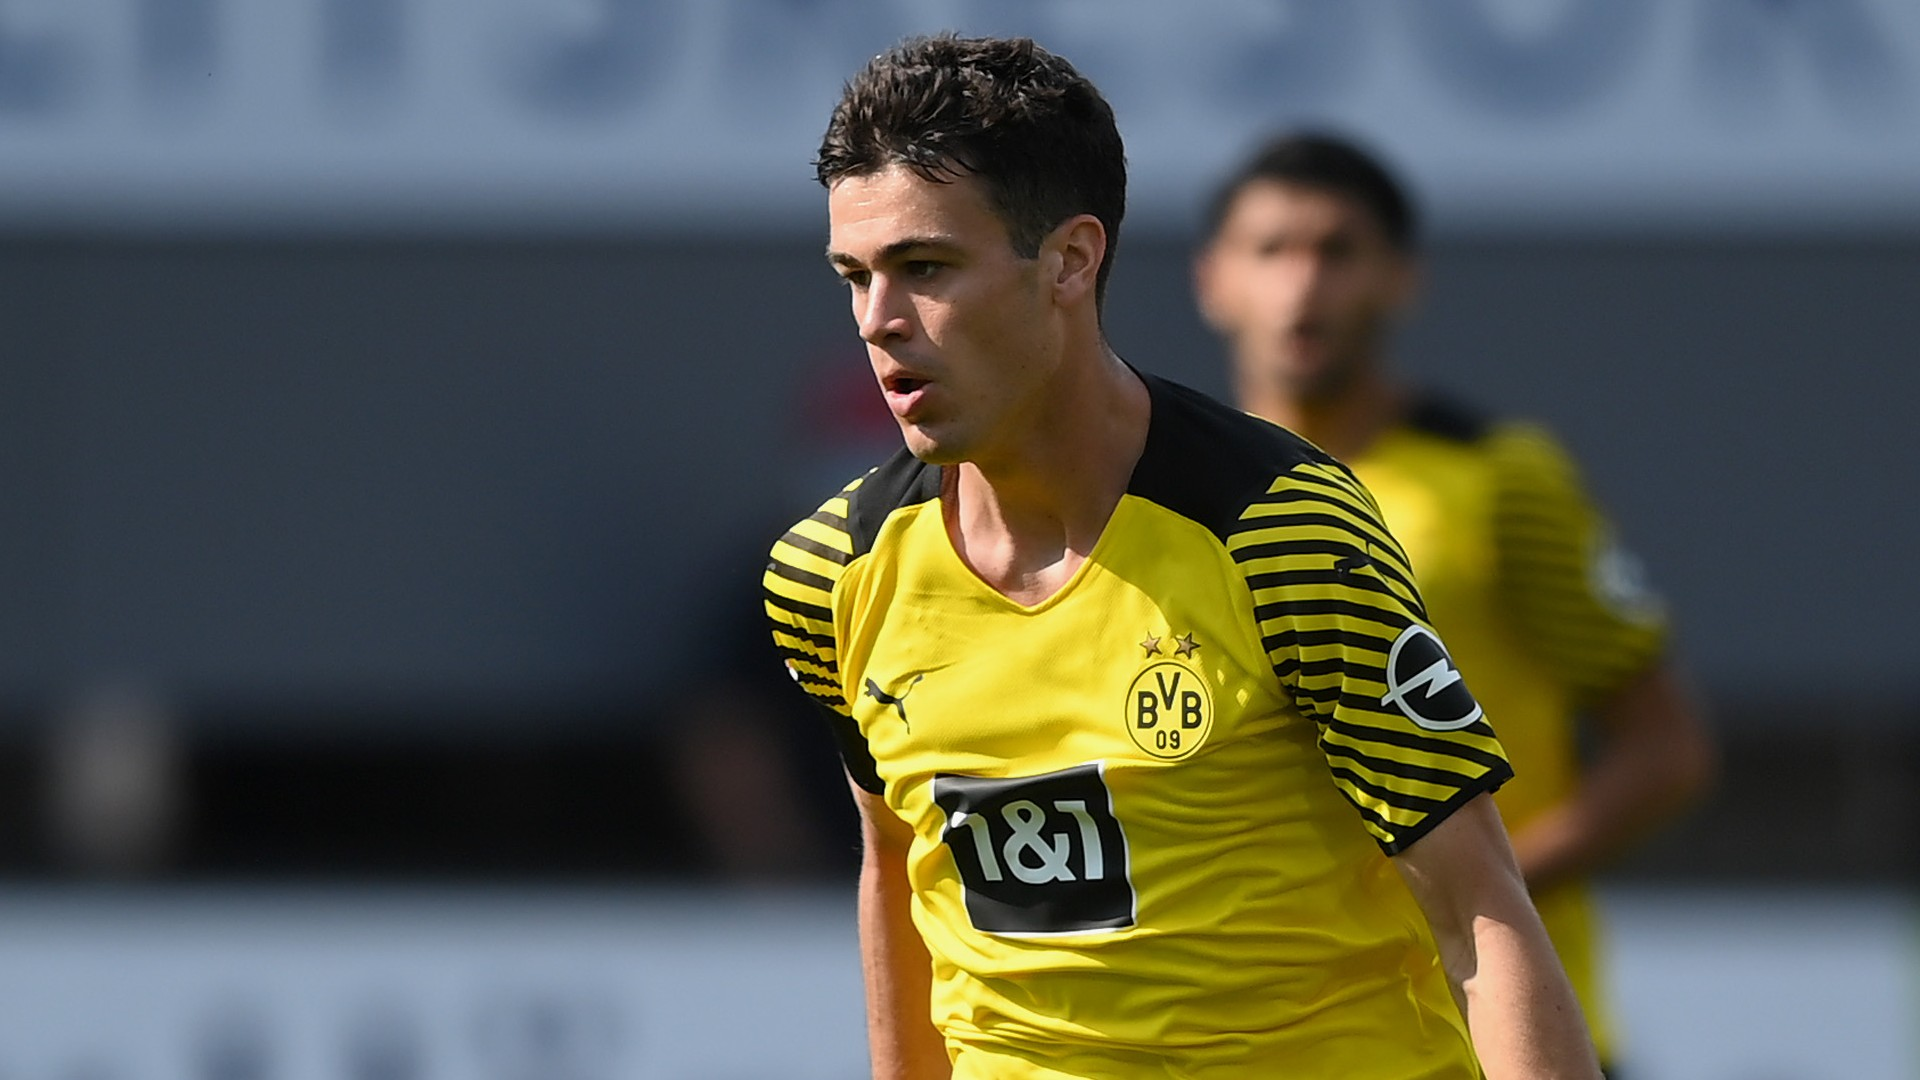 USMNT star Reyna not ready for Borussia Dortmund return as Haaland also remains sidelined